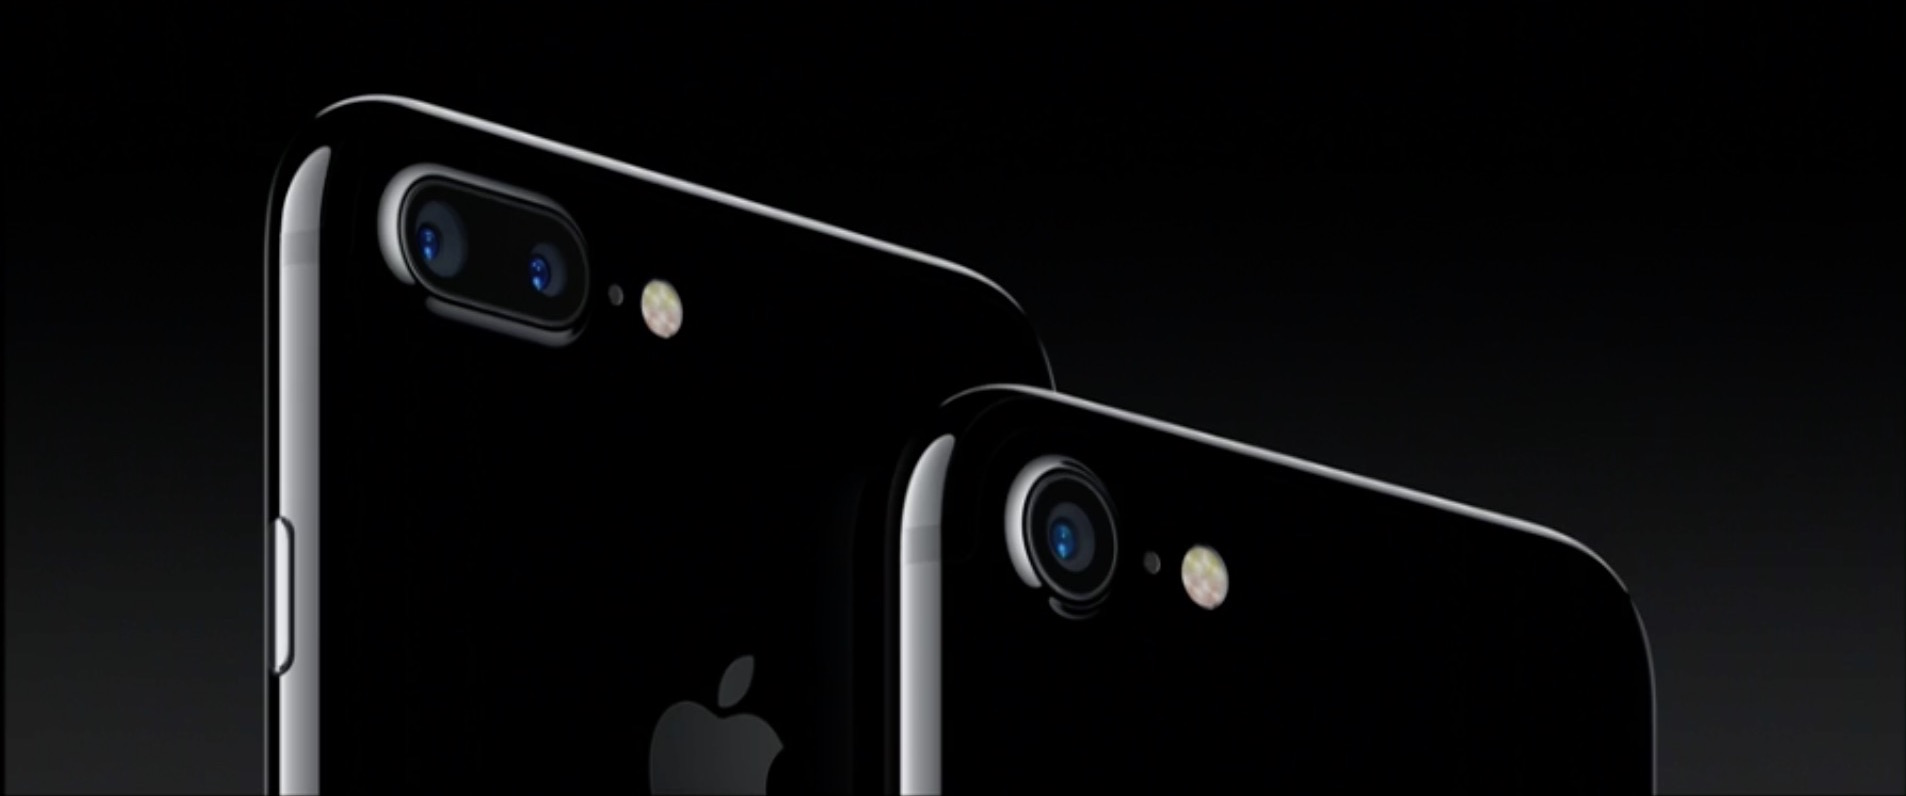 apple-released-iphone-7-and-iphone-7-plus-63.jpg